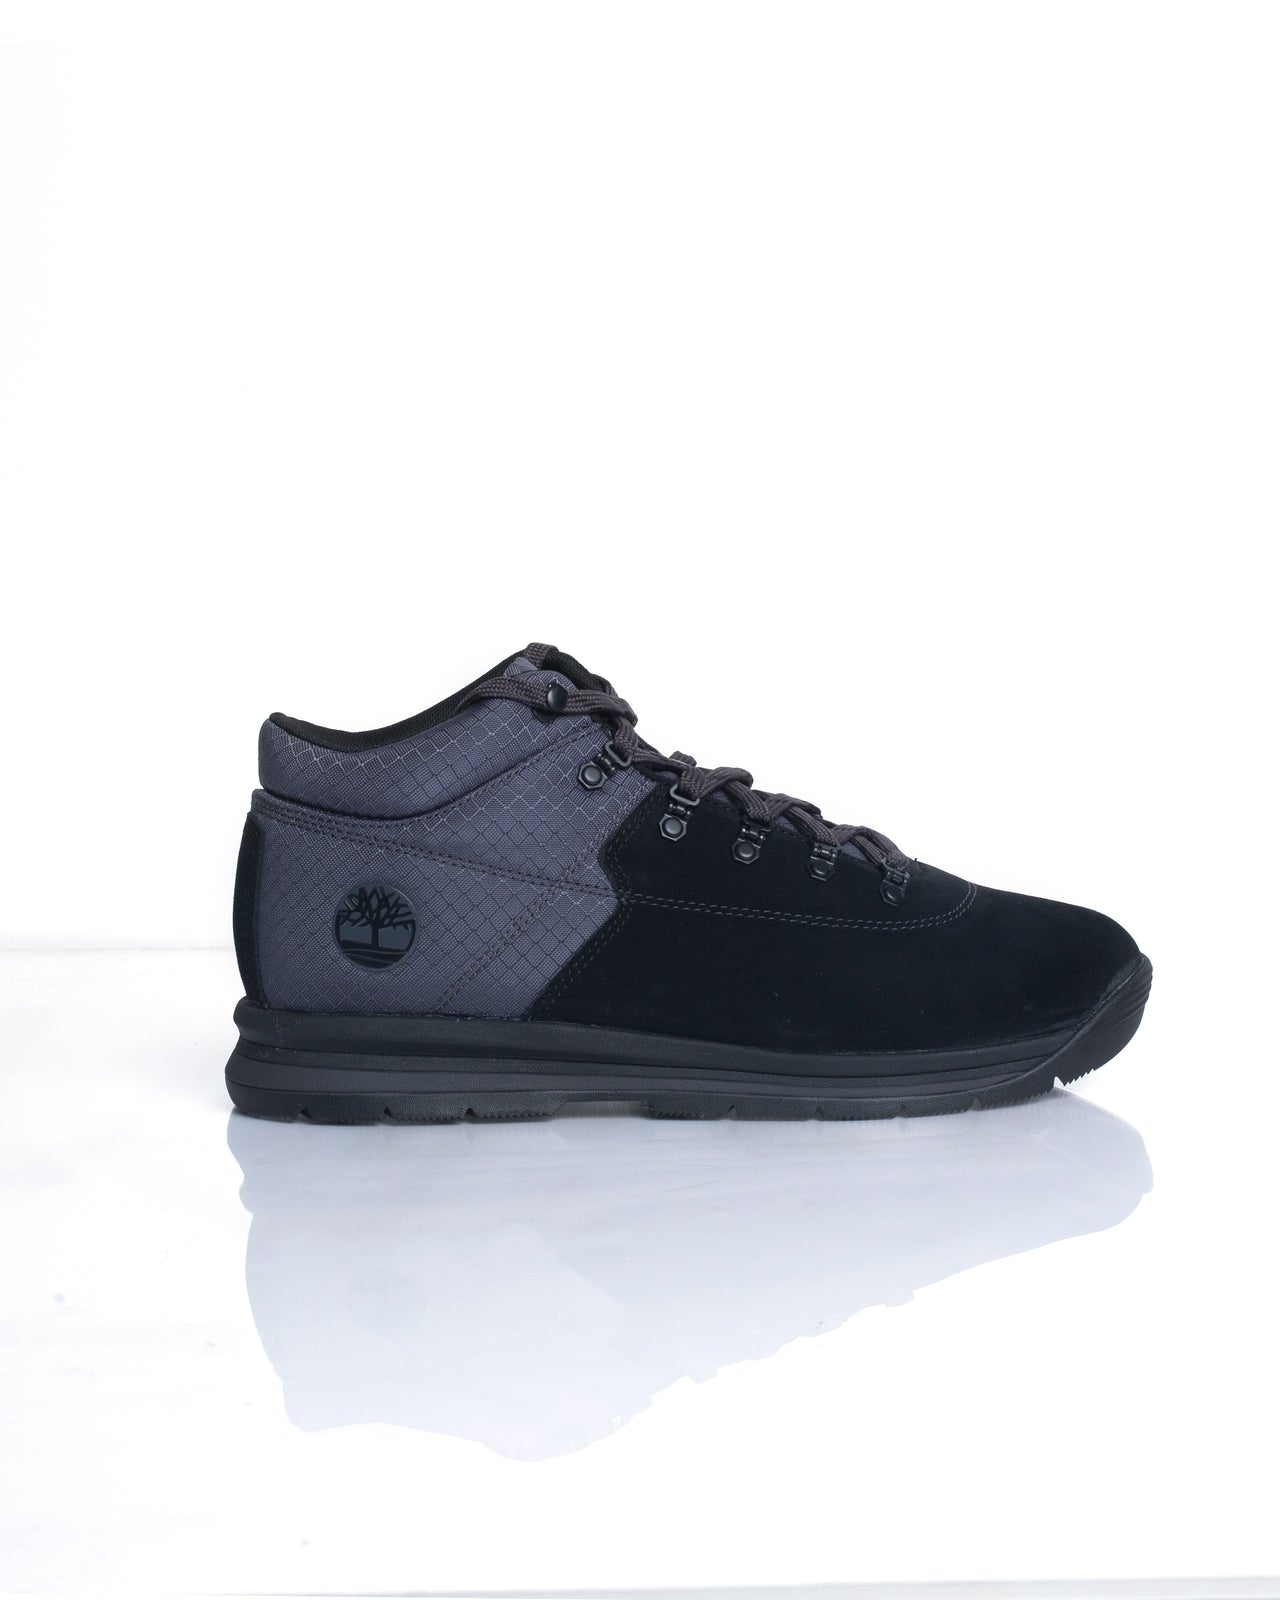 GT Rally Mid - Color: Black Suede | Black